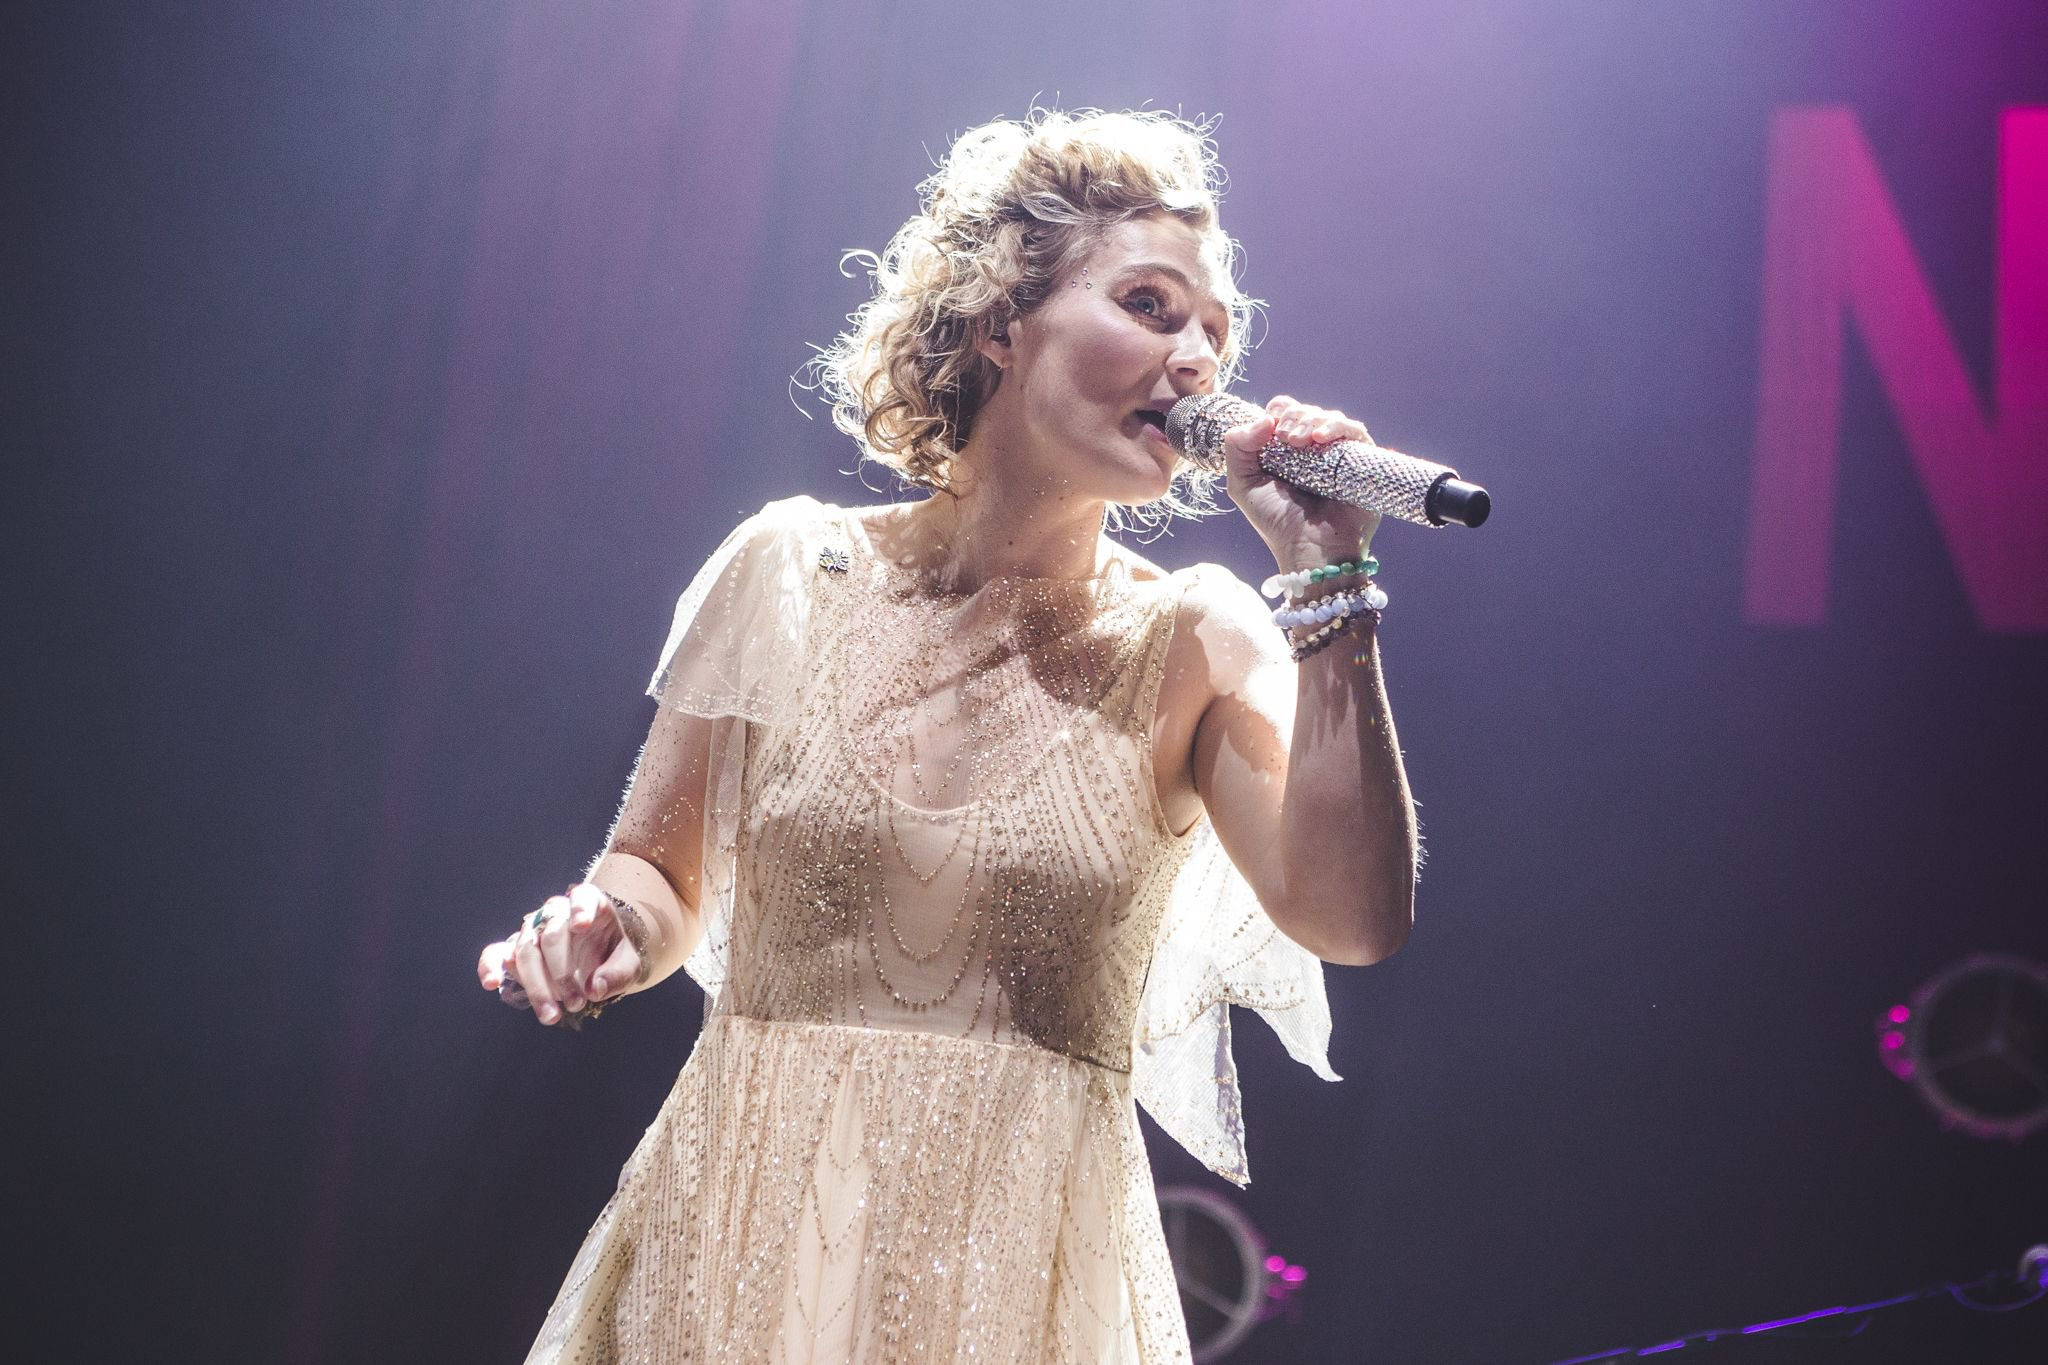 Mandatory Credit: Photo by Myles Wright/ZUMA Wire/REX/Shutterstock (9637398c) Clare Bowen 'Nashville' in concert at Manchester Arena, UK - 18 Apr 2018